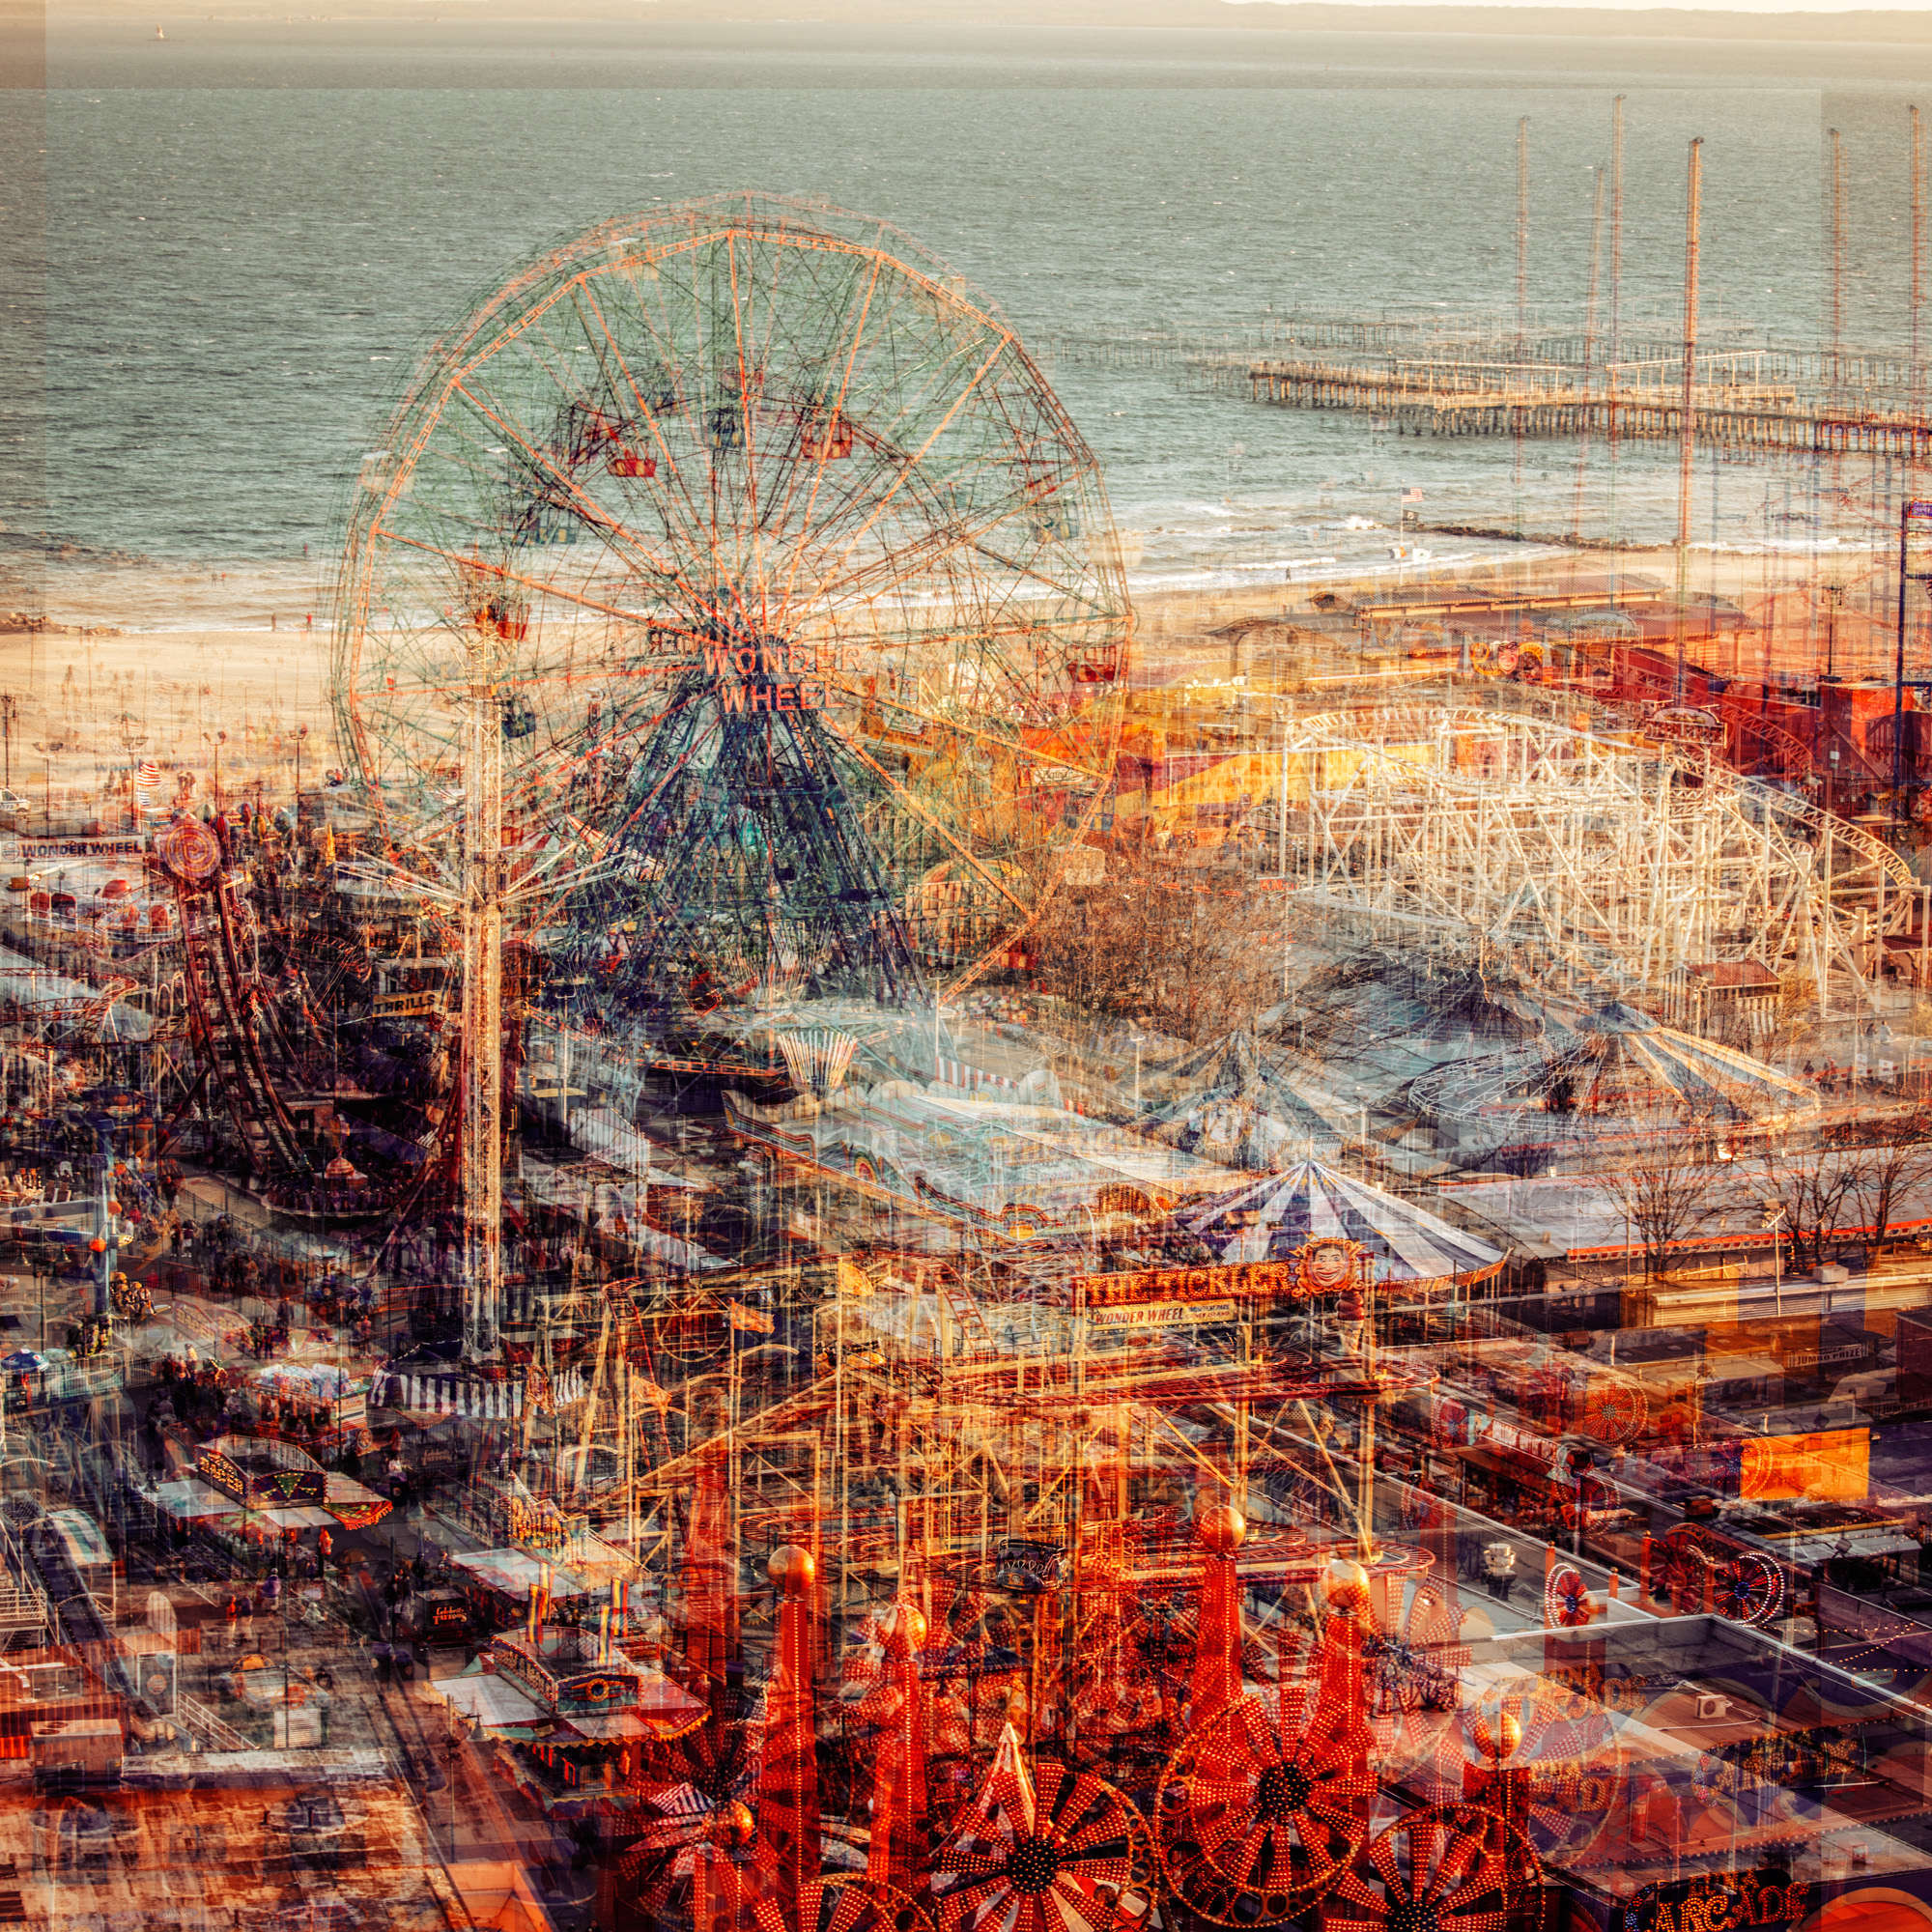 Laurent Dequick - Coney Island Playground